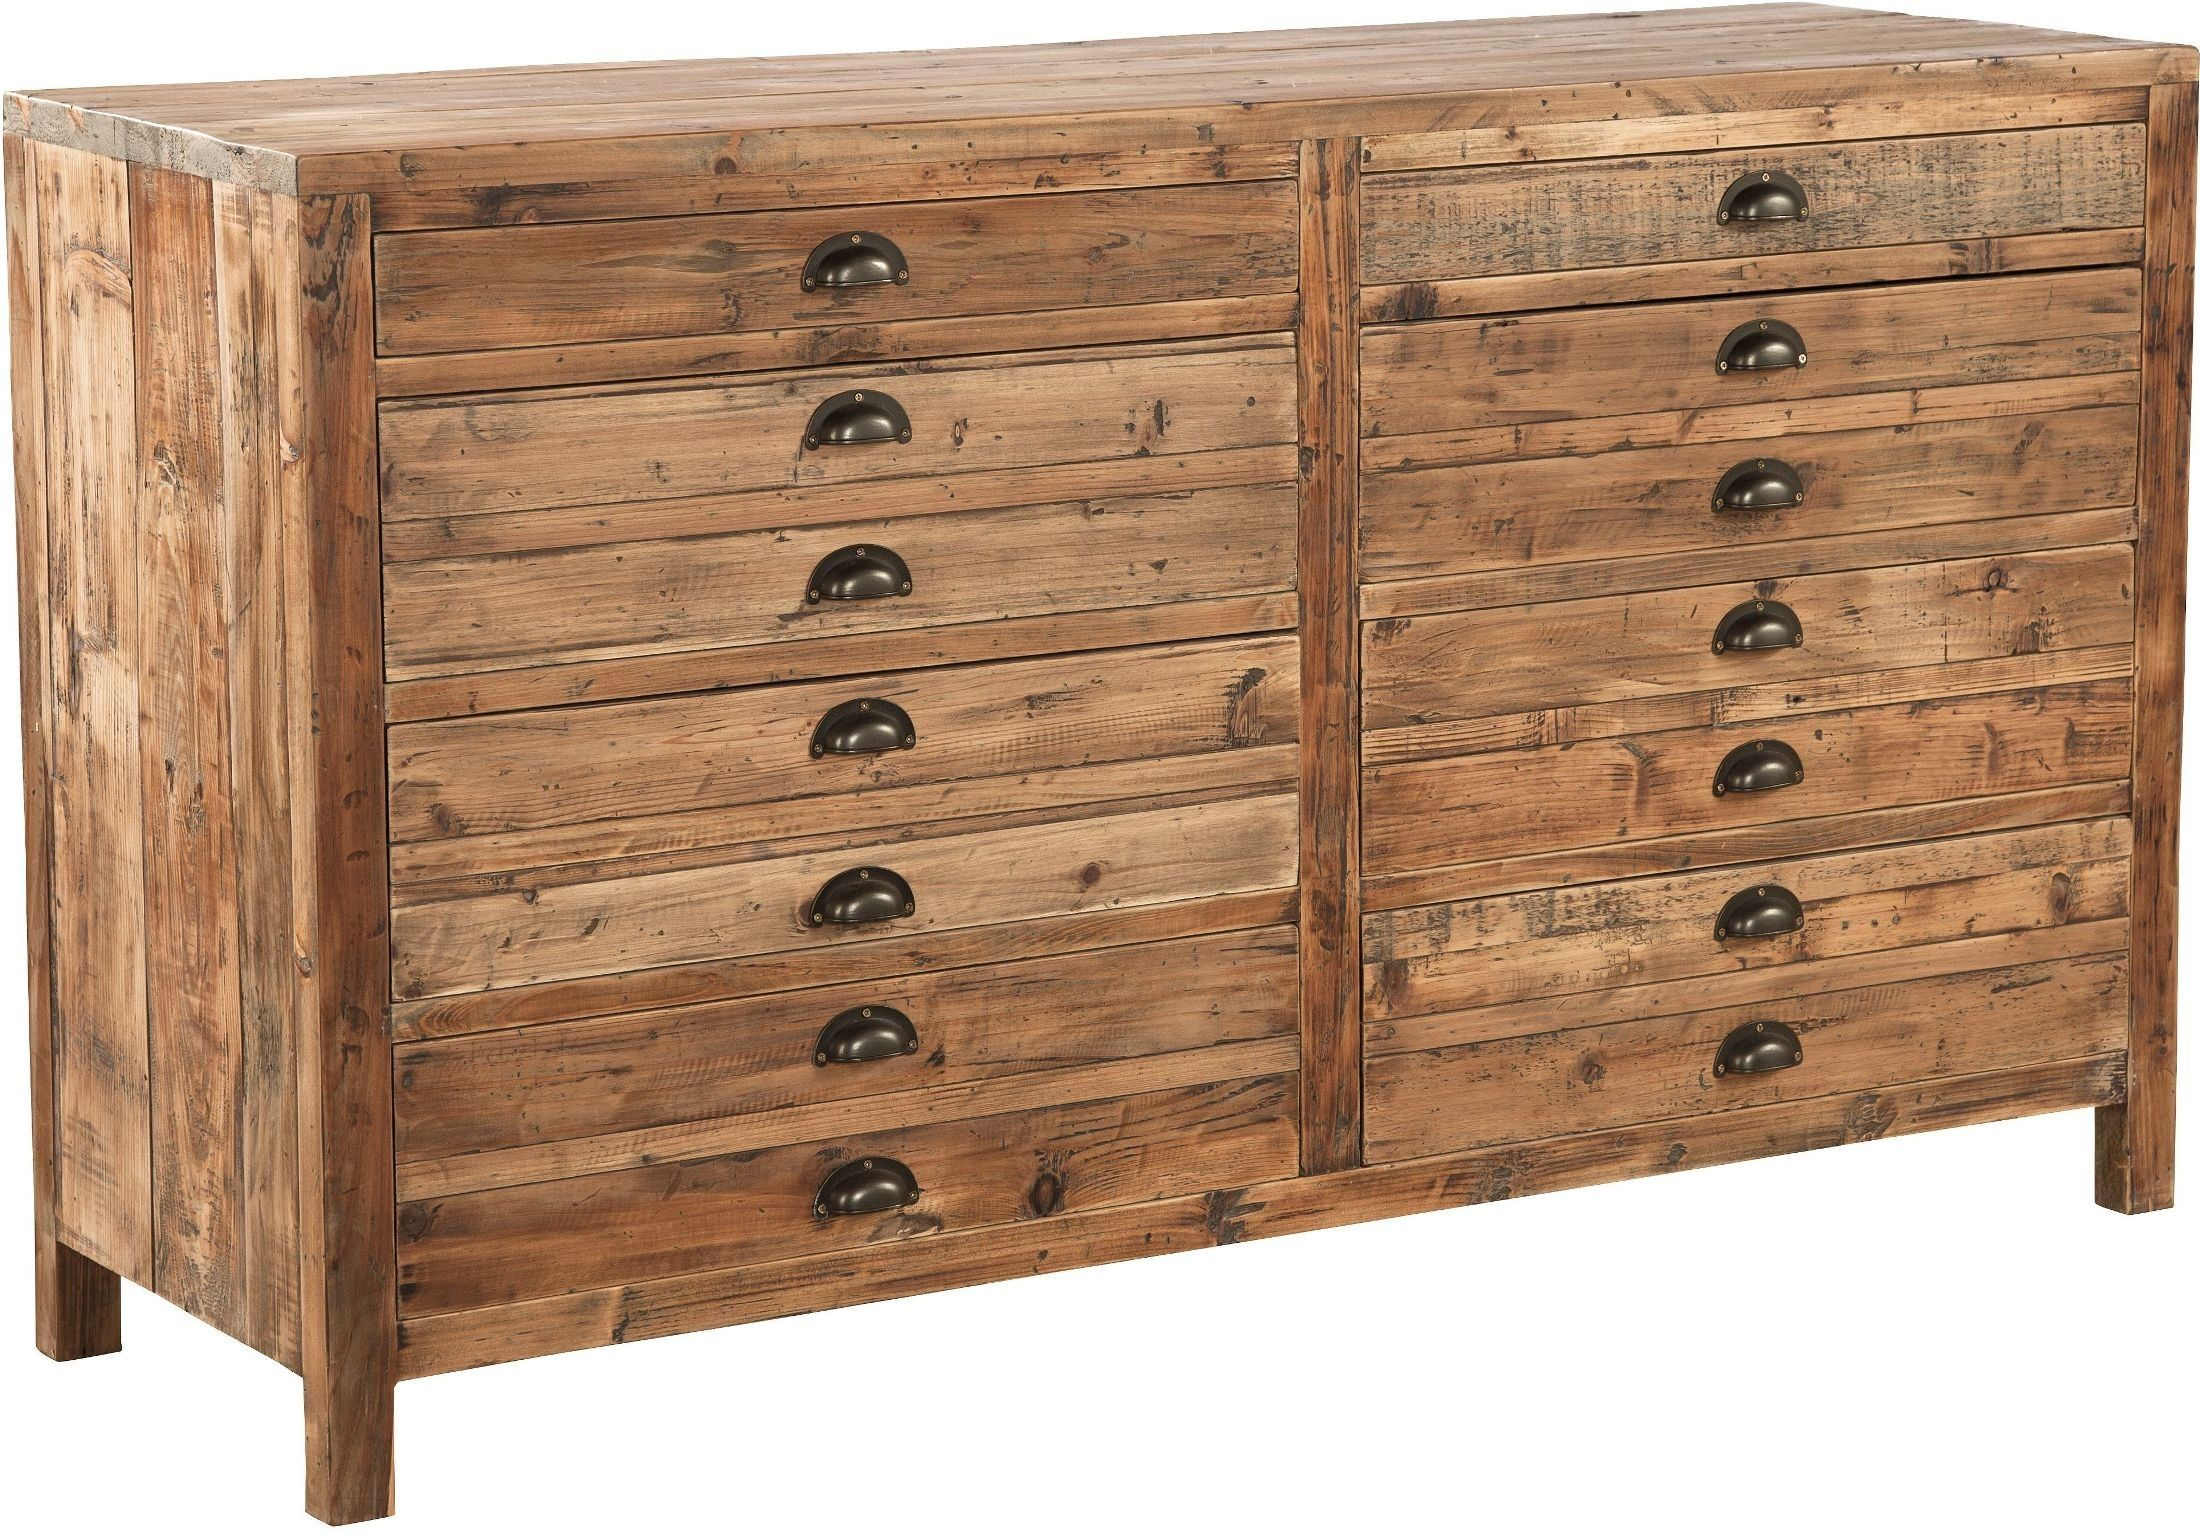 Apothecary Brown Medium Chest Reclaimed Wood Furniture Shabby Chic Dresser Shabby Chic Furniture